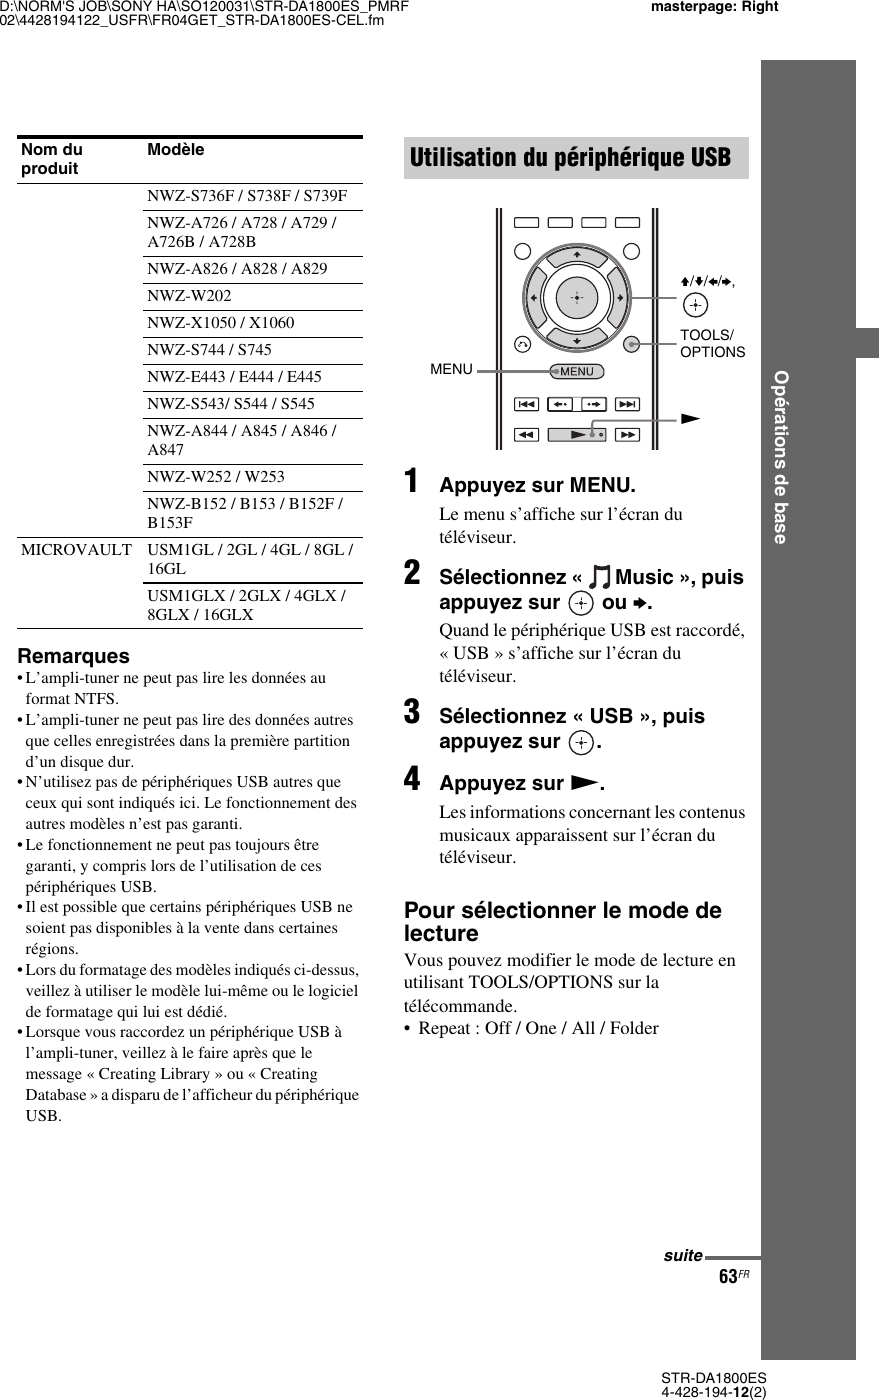 Samsung Sony Str Da1800Es Users Manual